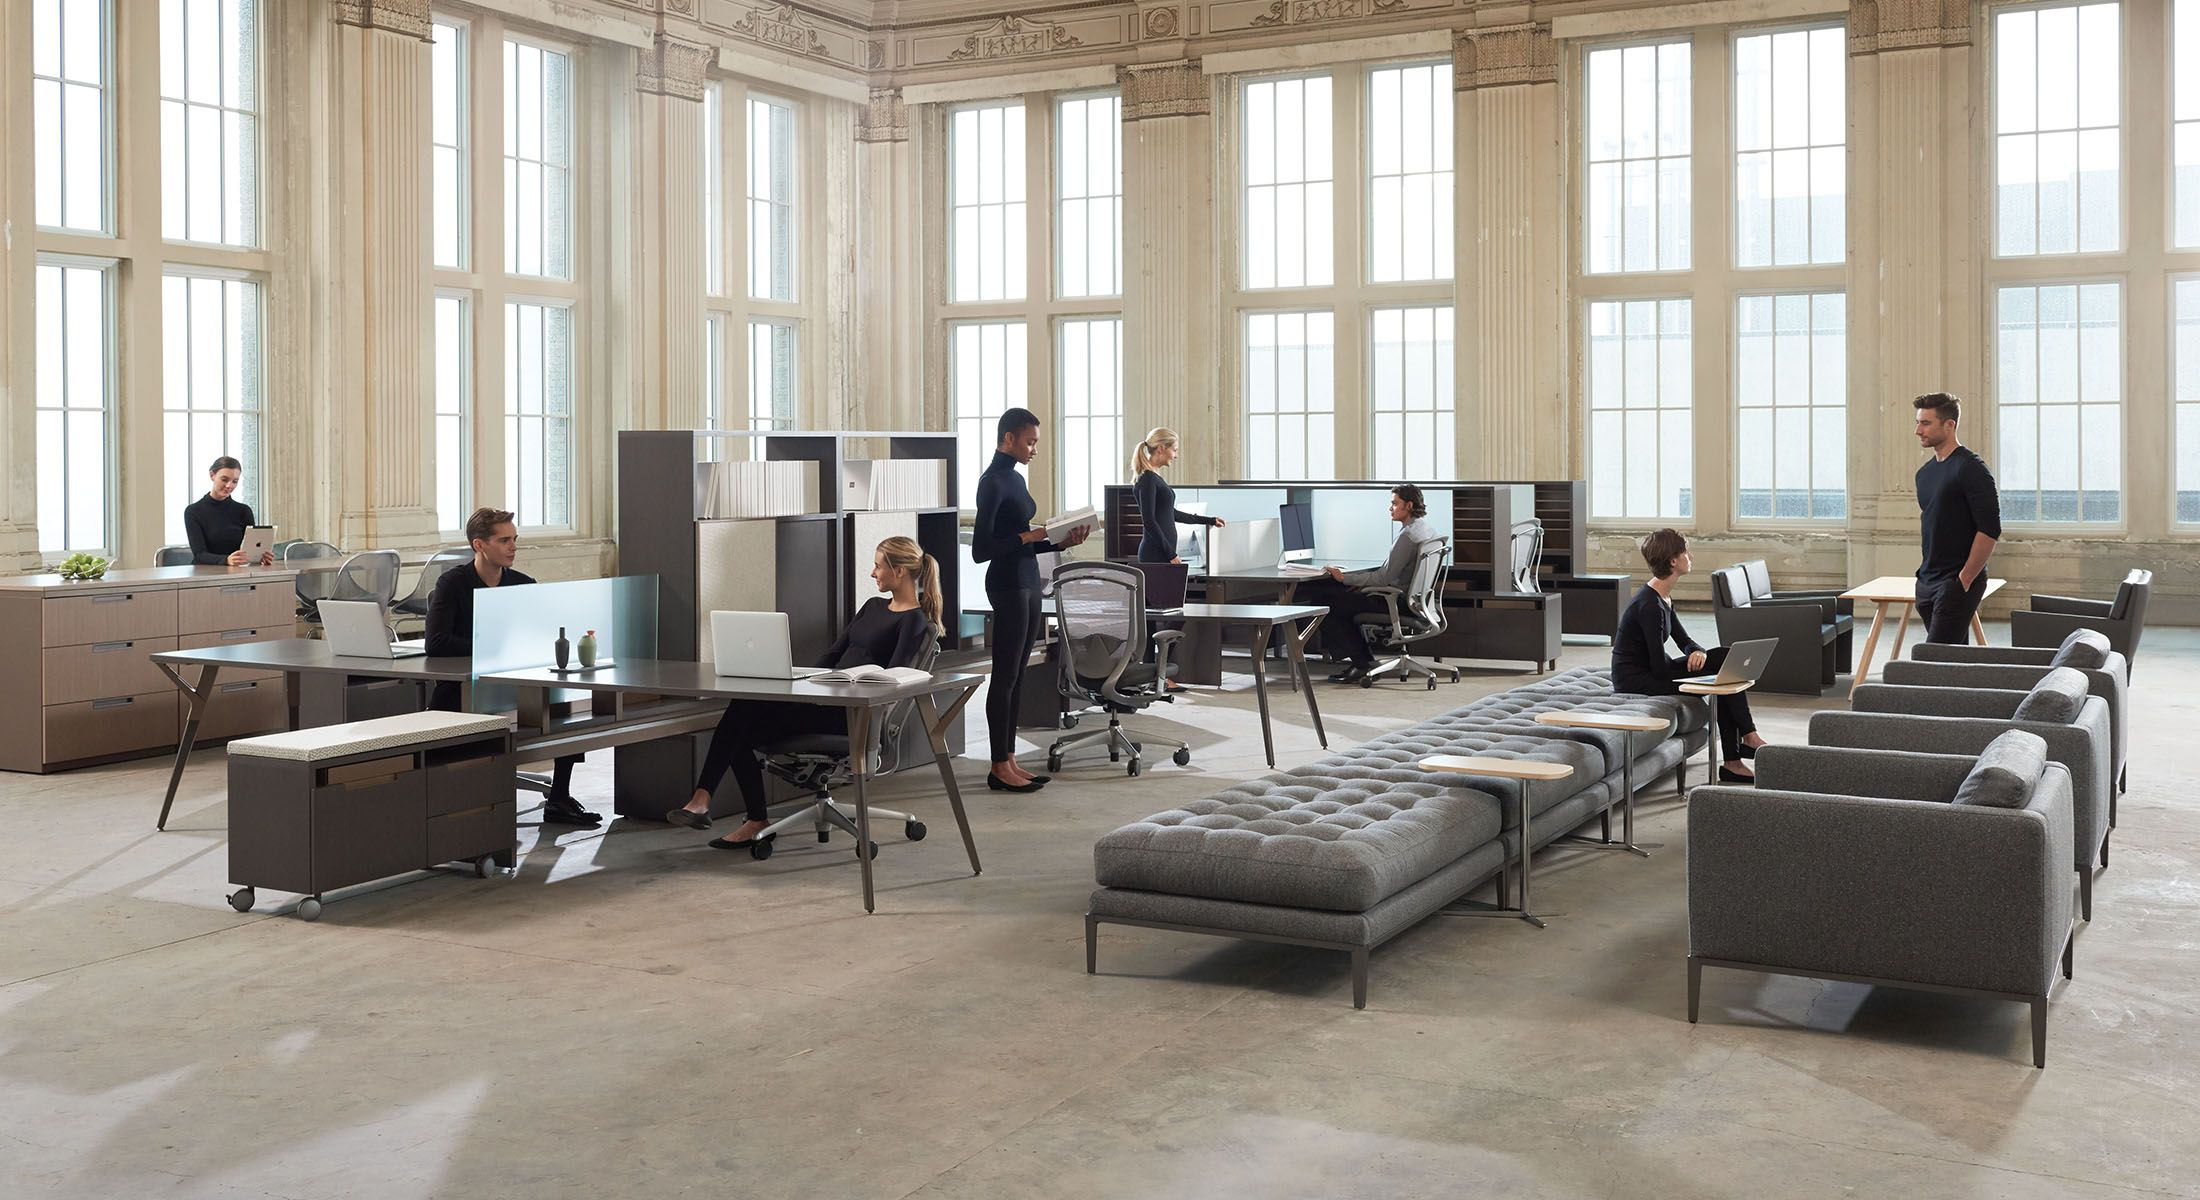 The Century Office Modern Or Traditional In Look And Feel Is A Place Defined By Creativity Mobility Collaboration Enabled Technology Made More